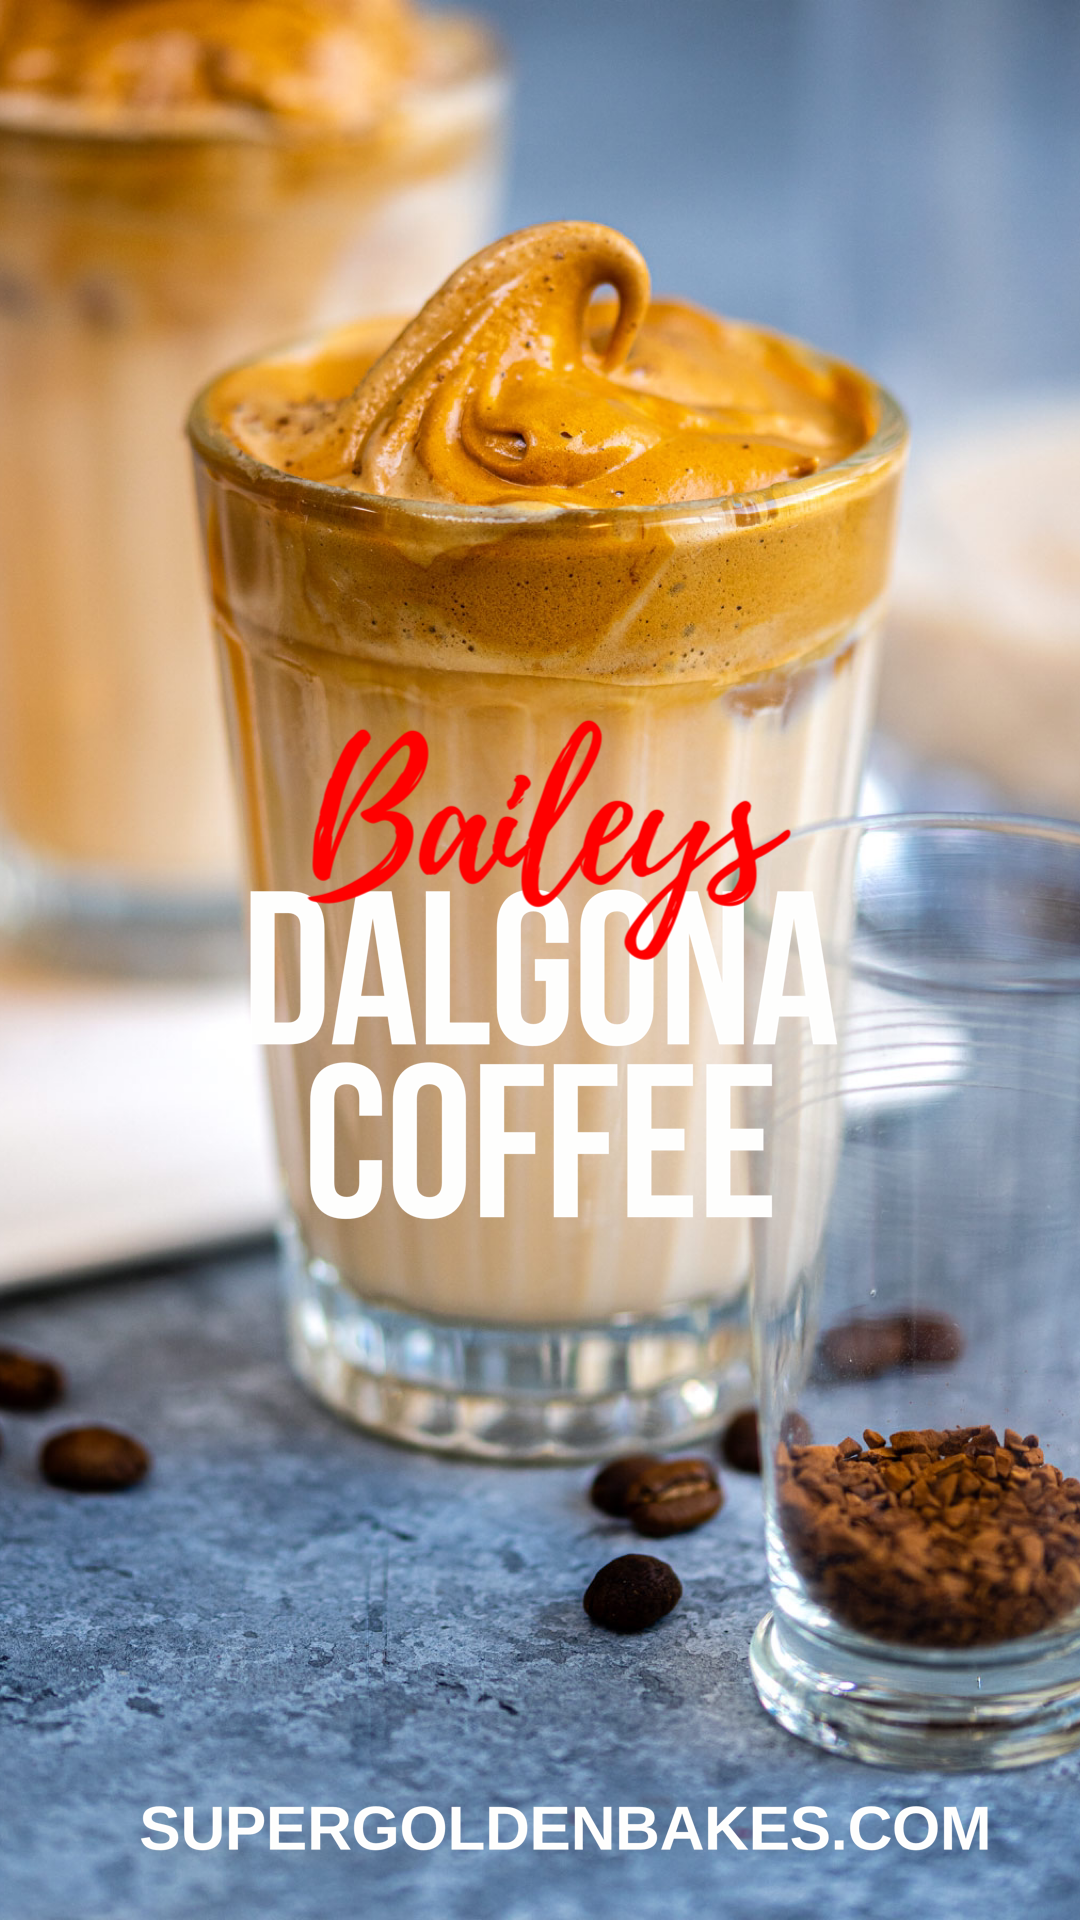 Baileys Whipped Coffee (Dalgona Coffee) in 2020 Ice